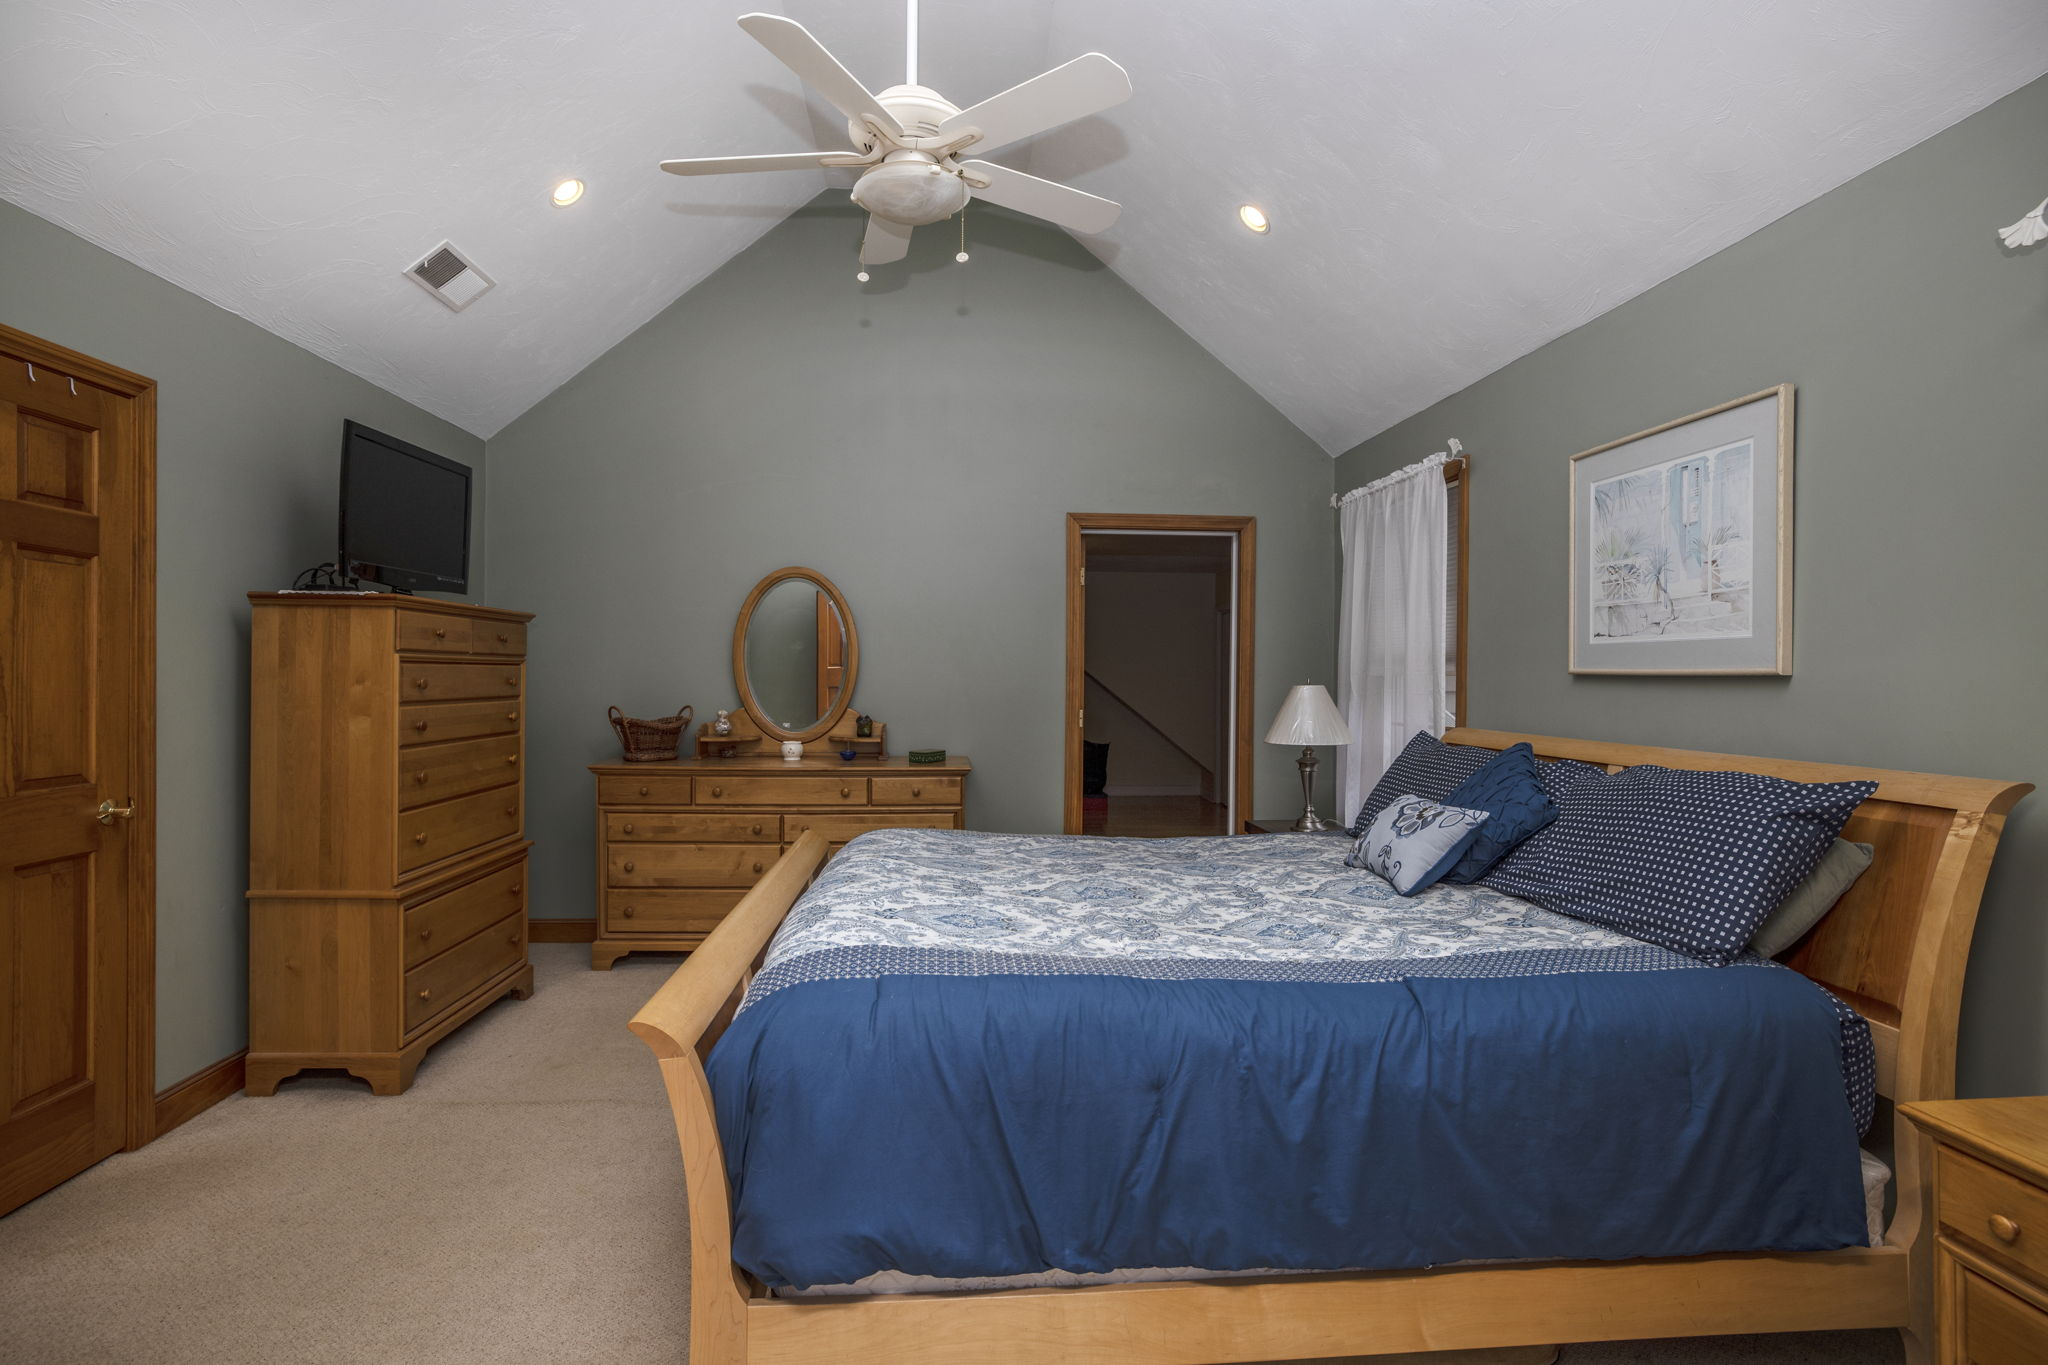 Master Bedroom-Cathedral ceiling